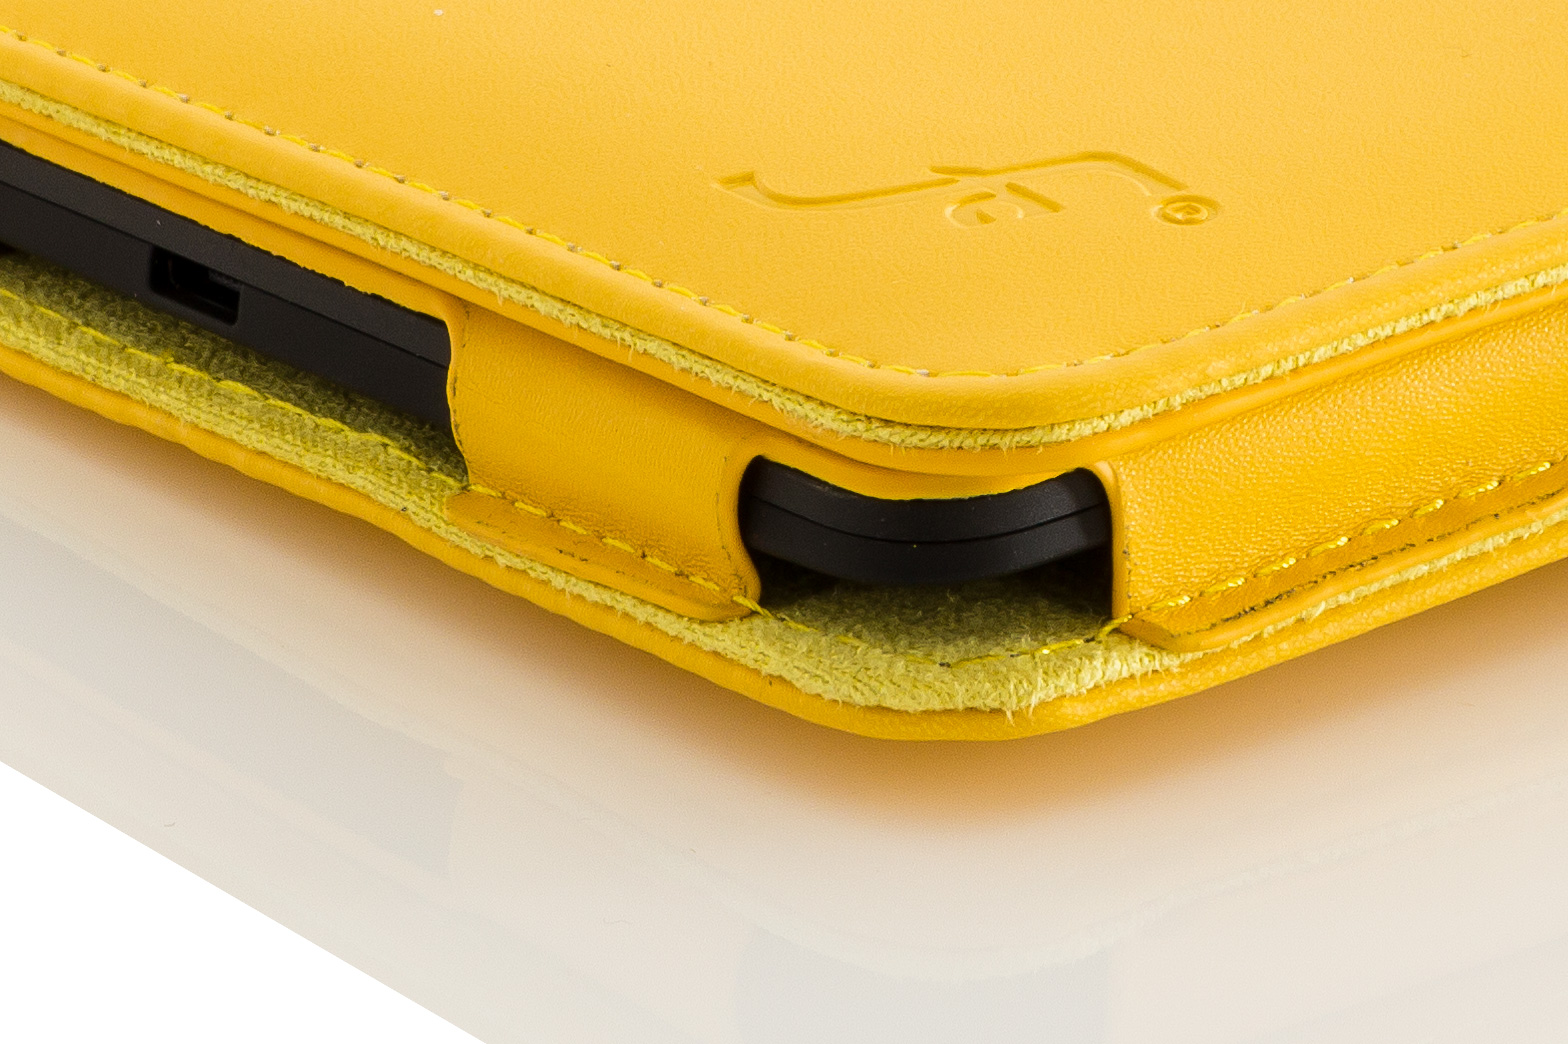 Details about Forefront Cases Yellow Case Cover Sleeve Amazon Kindle 2016 &  Scrn Prot Stylus